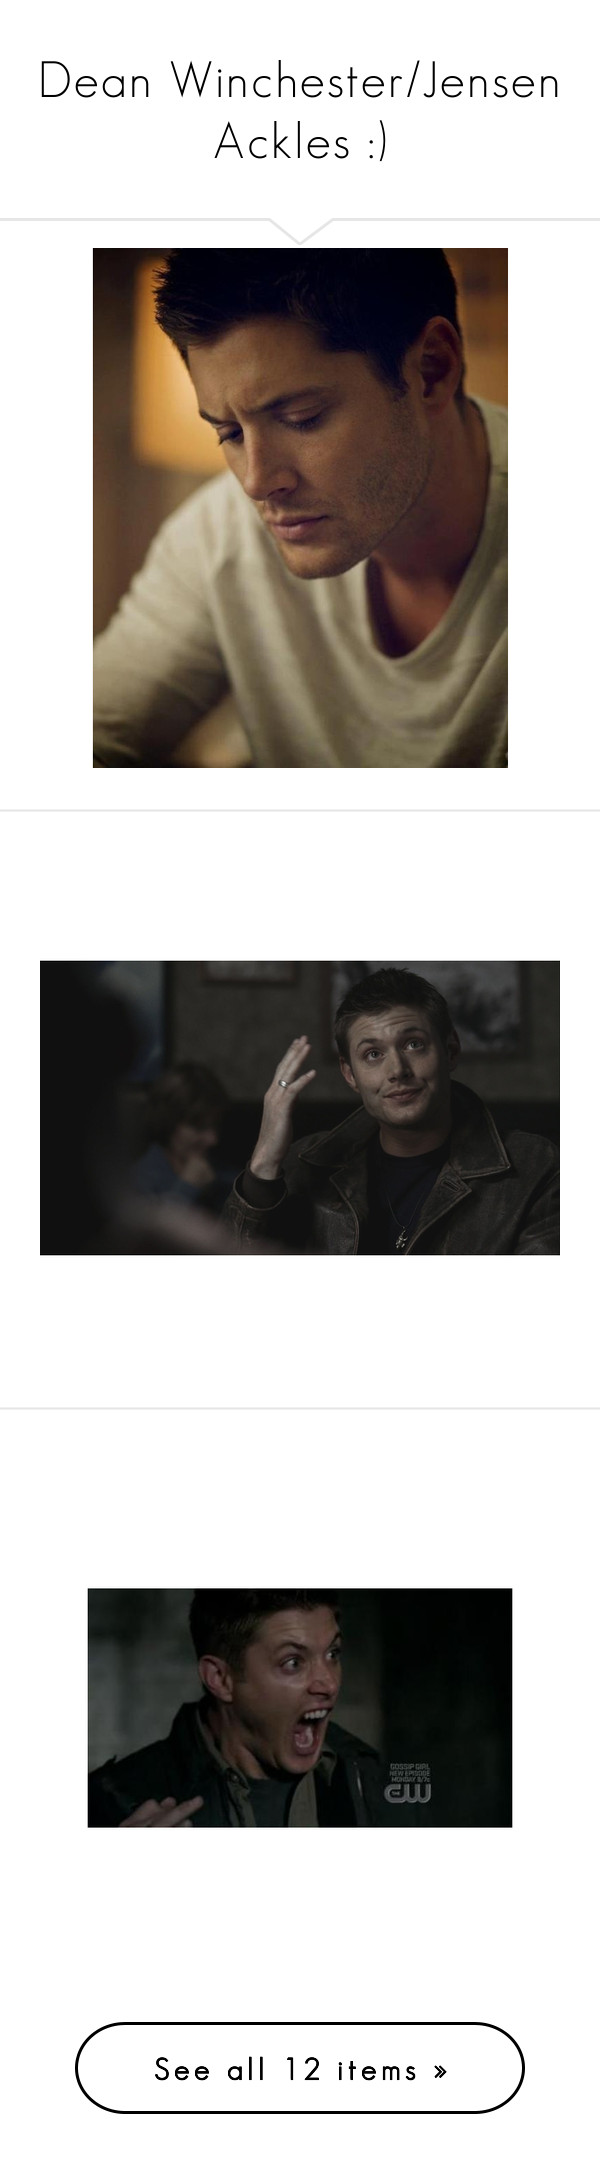 Dean Winchester Jensen Ackles By Nerdbucket Liked On